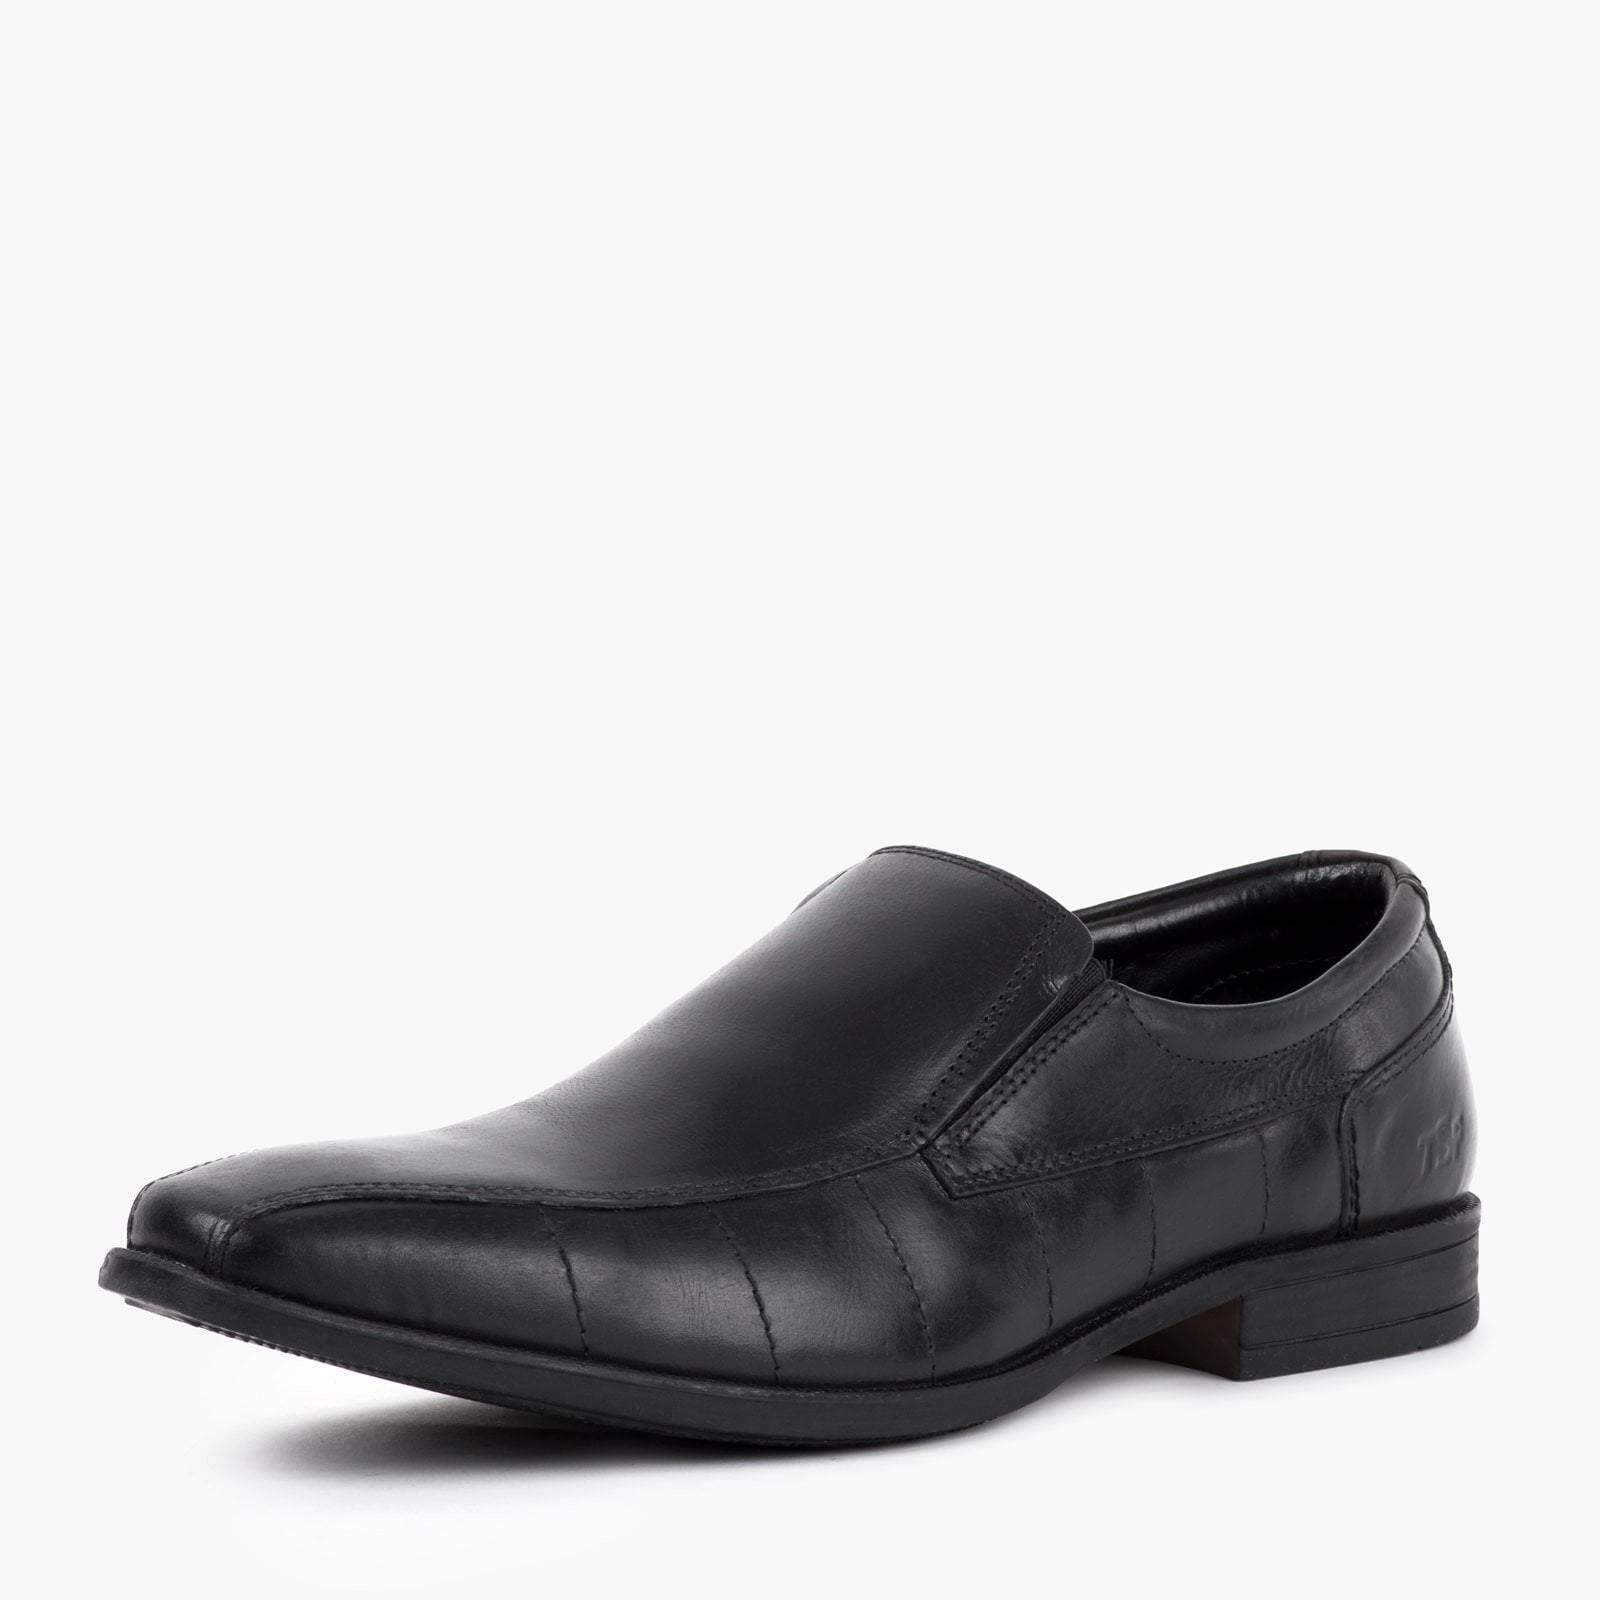 Redfoot Shoes Footwear UK 6 / EURO 39 / US 7 / Black / Leather MENS BLACK LEATHER SLIP ON